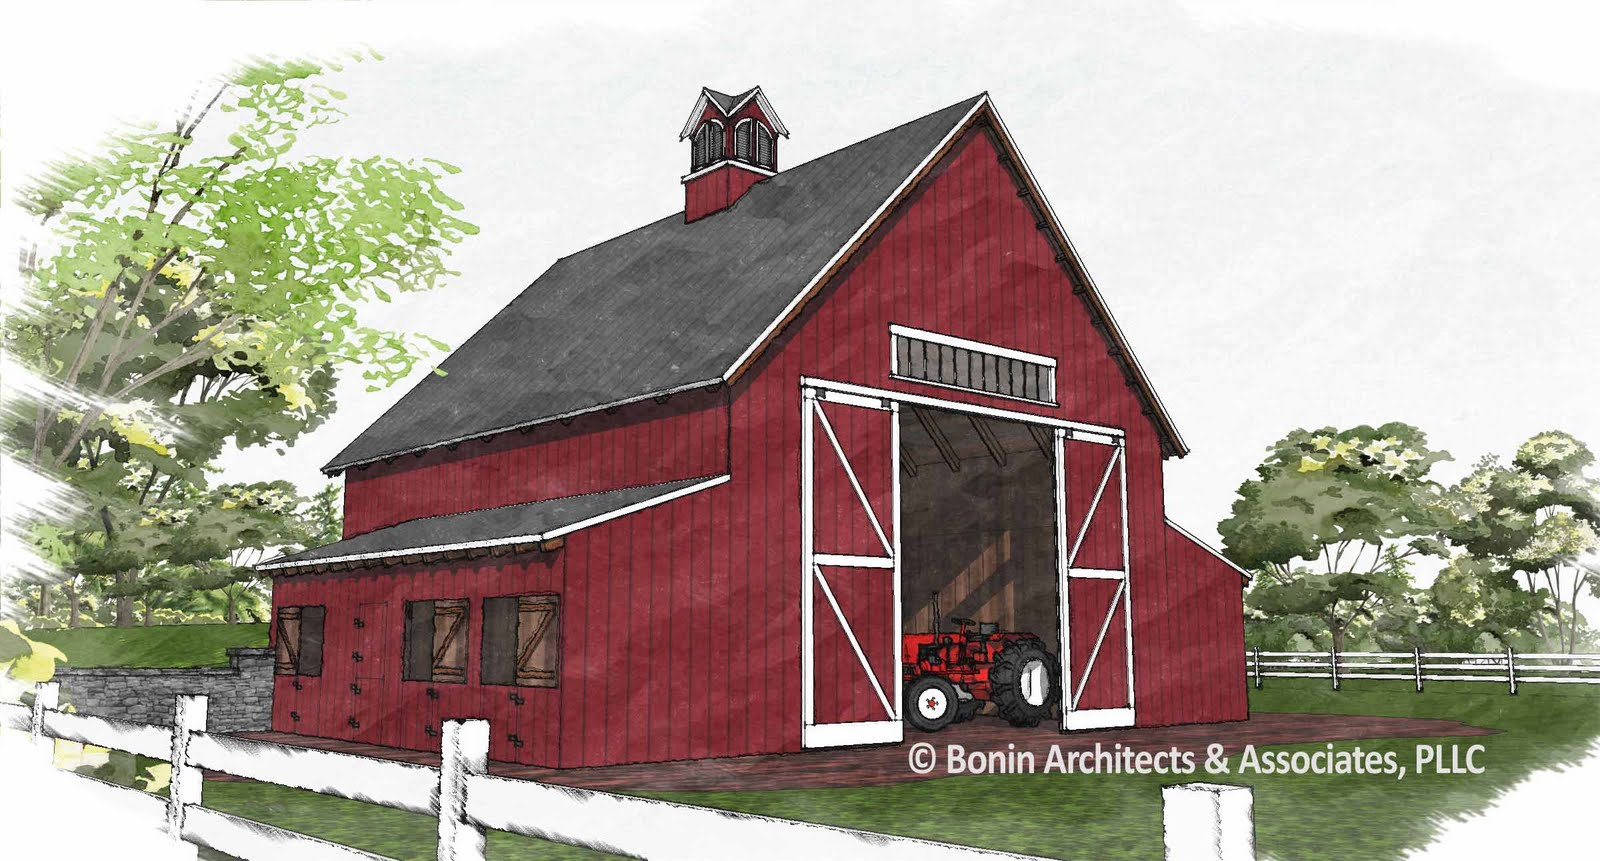 Post and beam timber frame blog july 2010 for Post beam barn plans